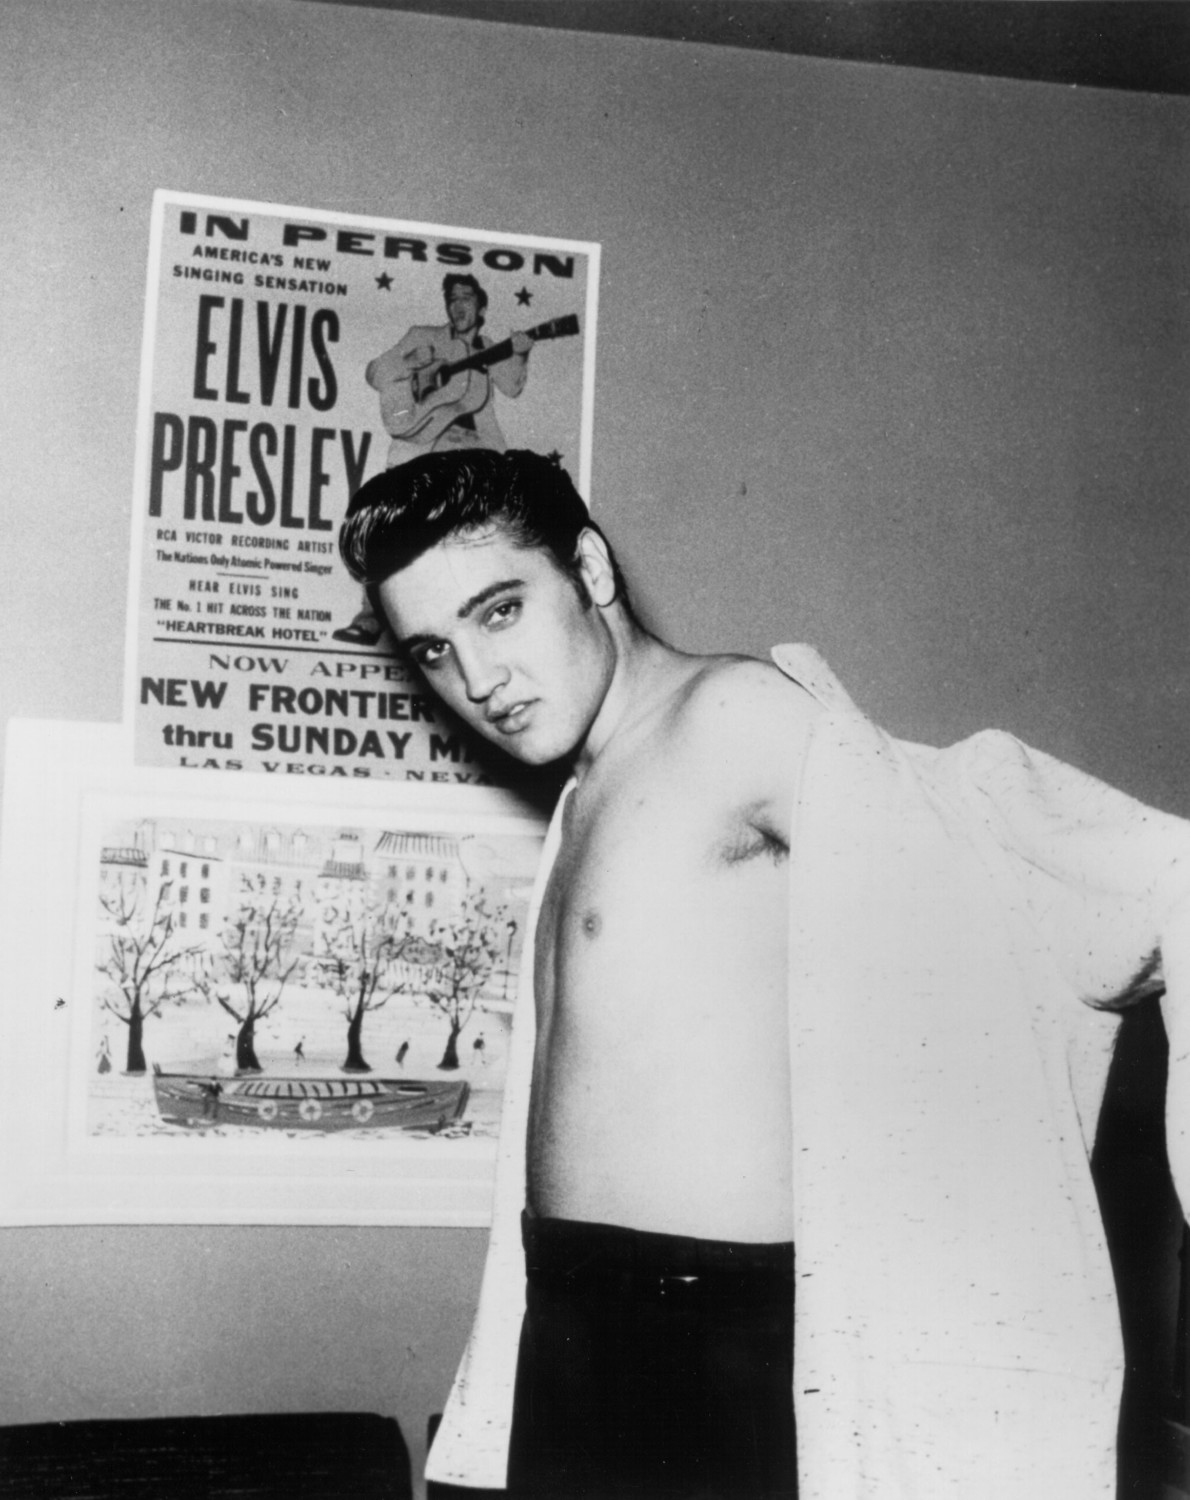 Elvis Presley Las Vegas April May 1956.